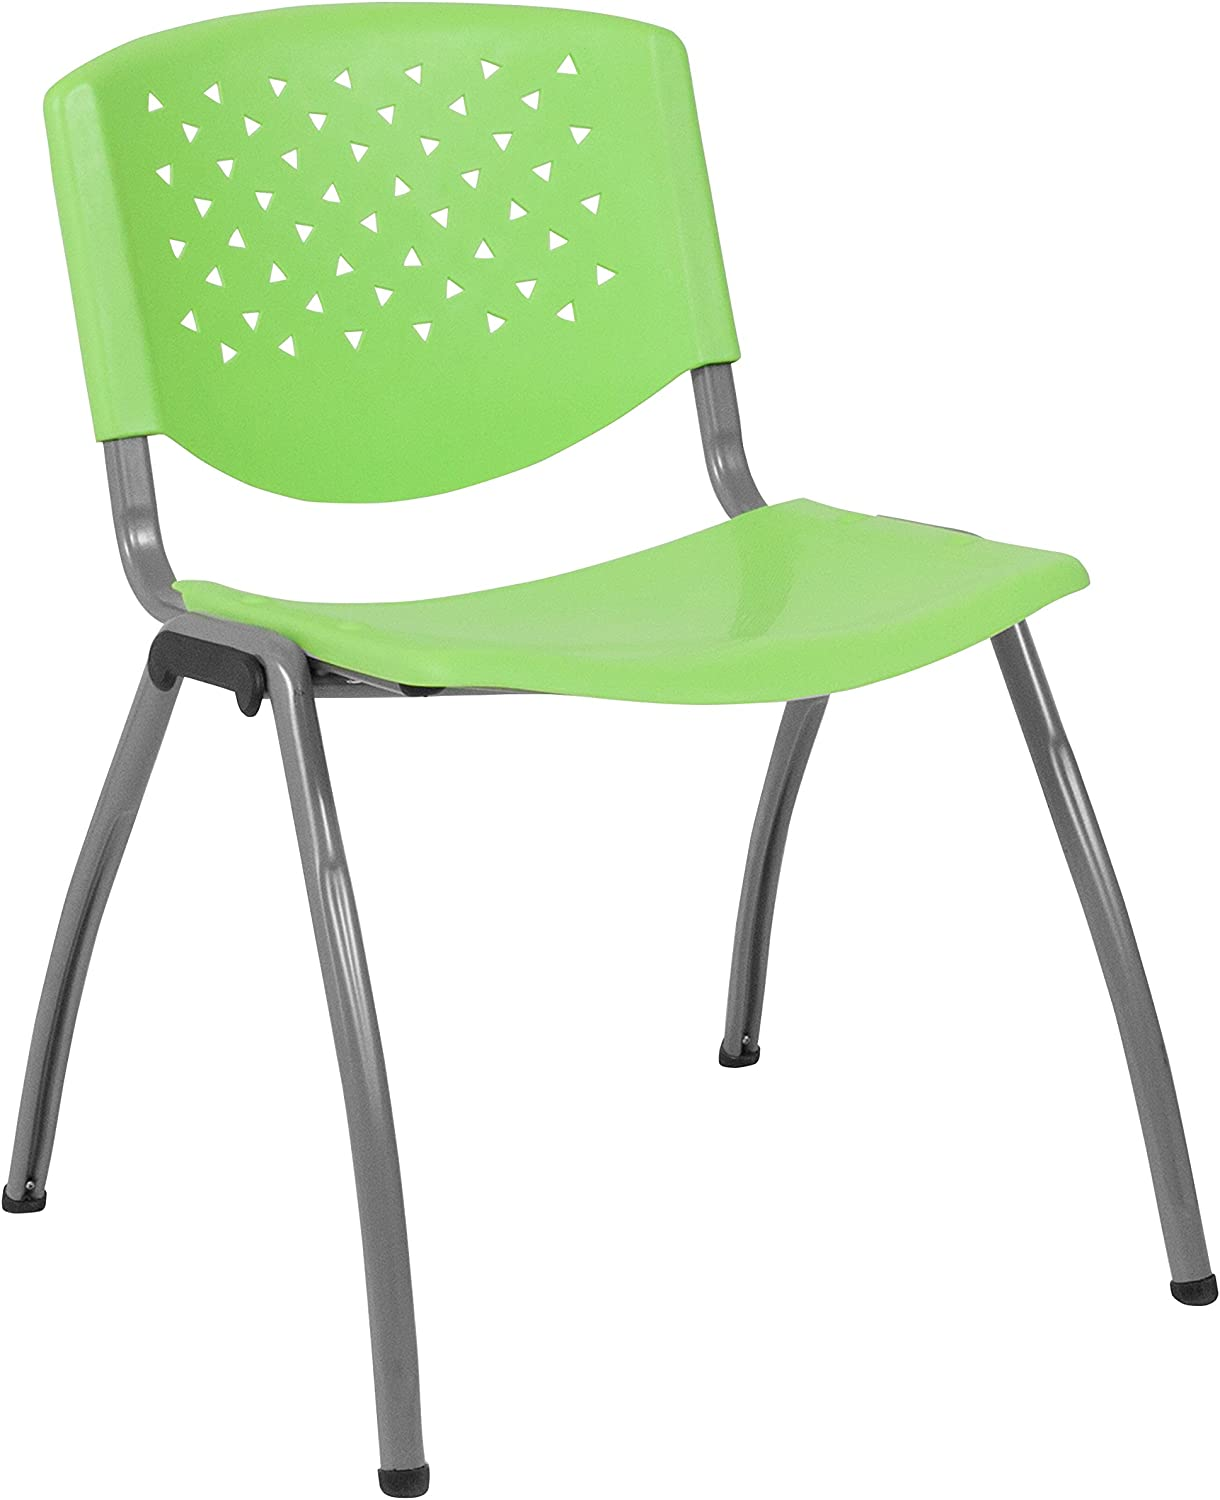 Flash Furniture HERCULES Series 880 lb. Capacity Green Plastic Stack Chair with Titanium Gray Powder Coated Frame